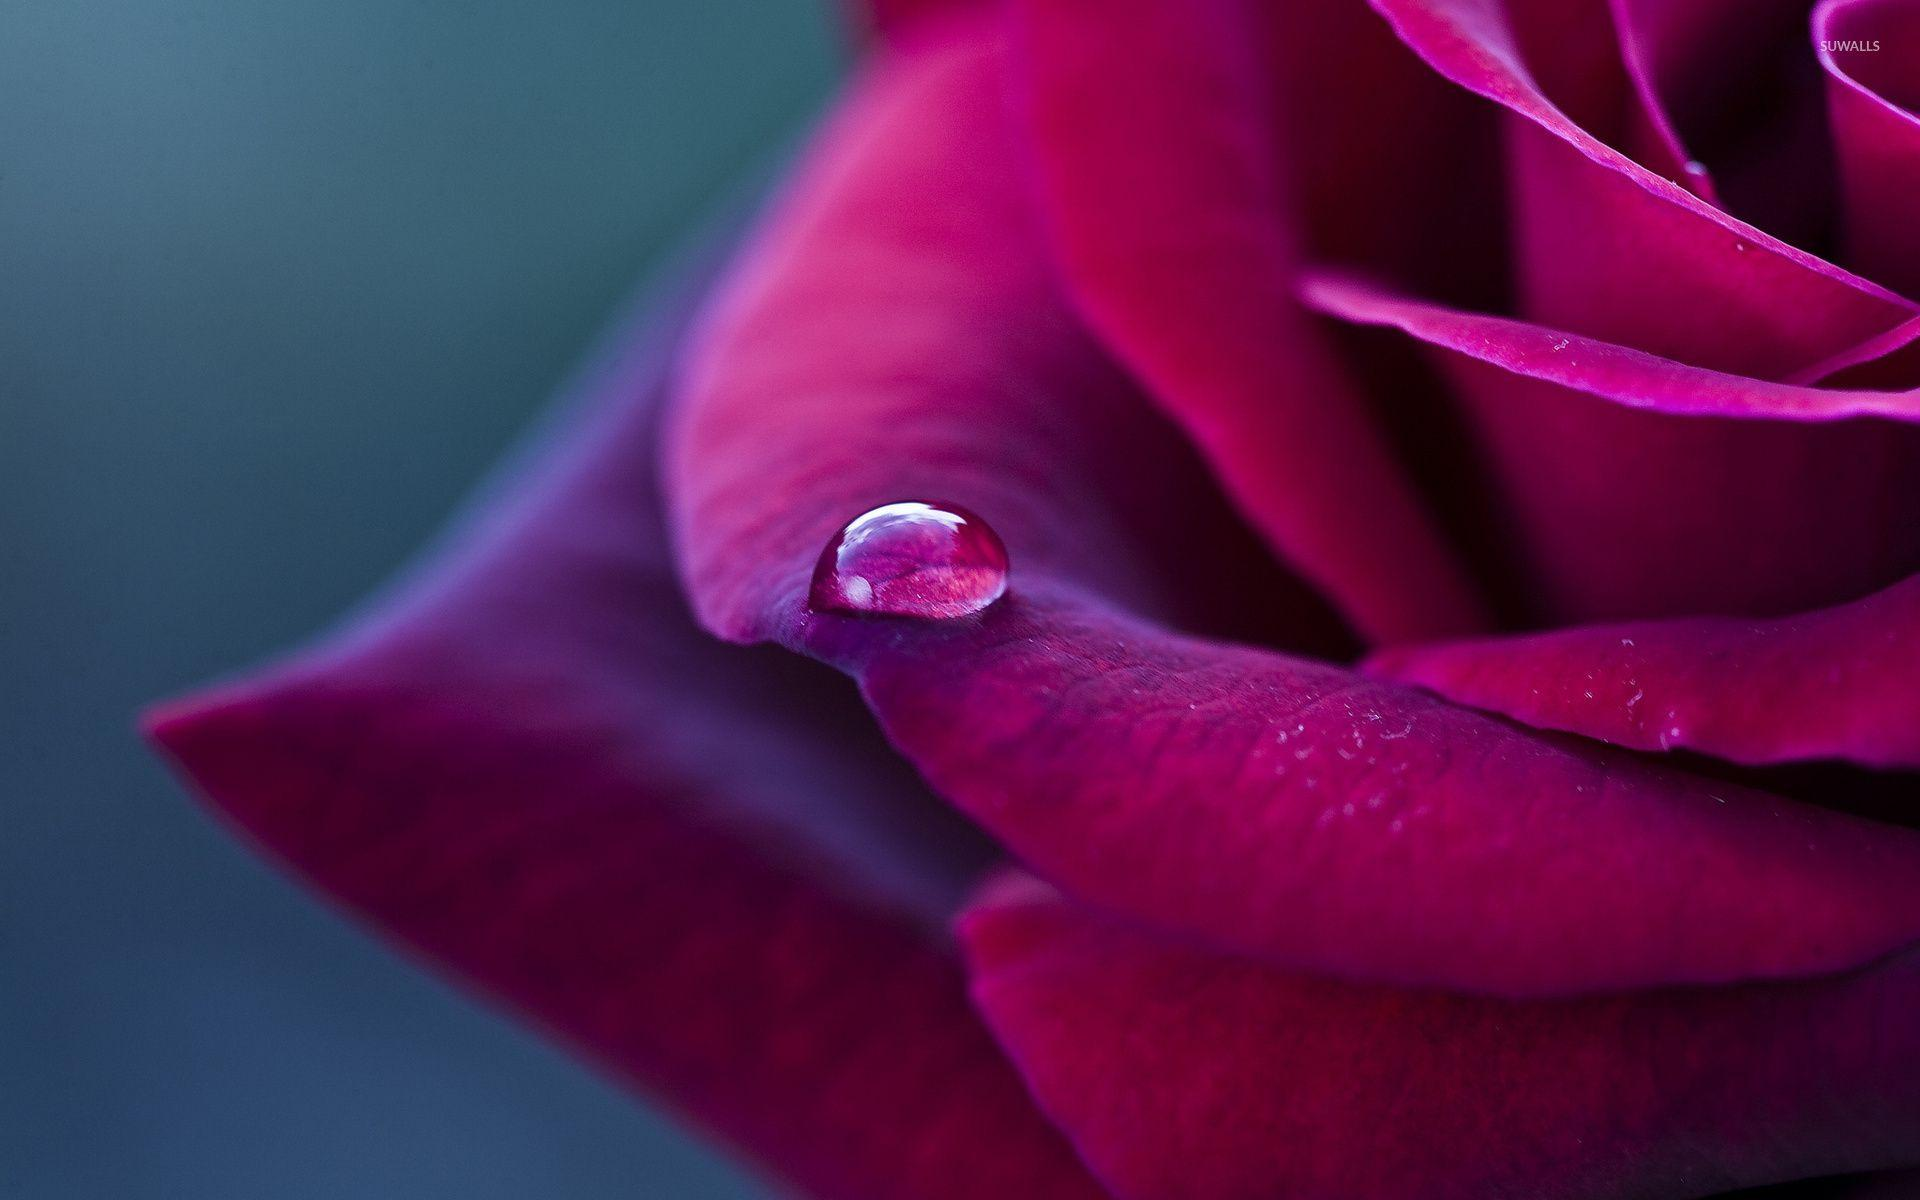 Water drop on a purple rose wallpaper - Flower wallpapers - #42045 ...